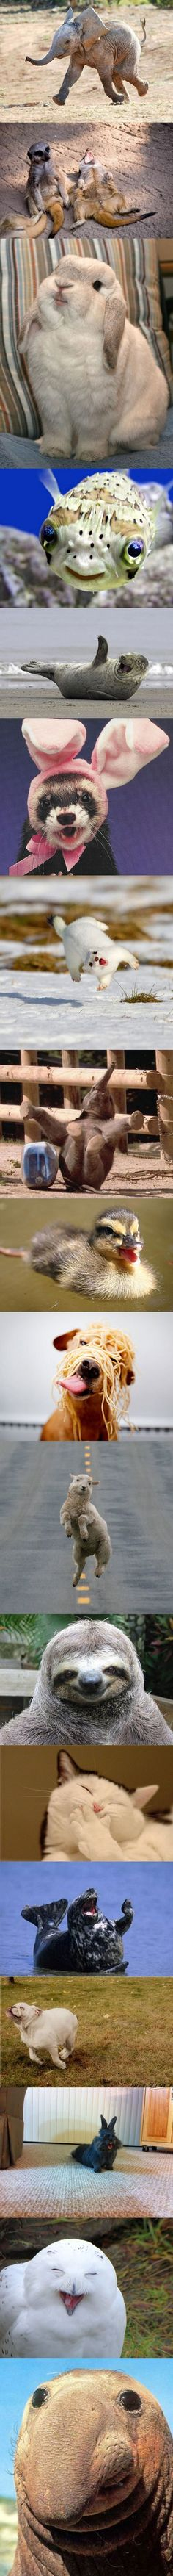 These make me smile!      Happiest Animals In The World